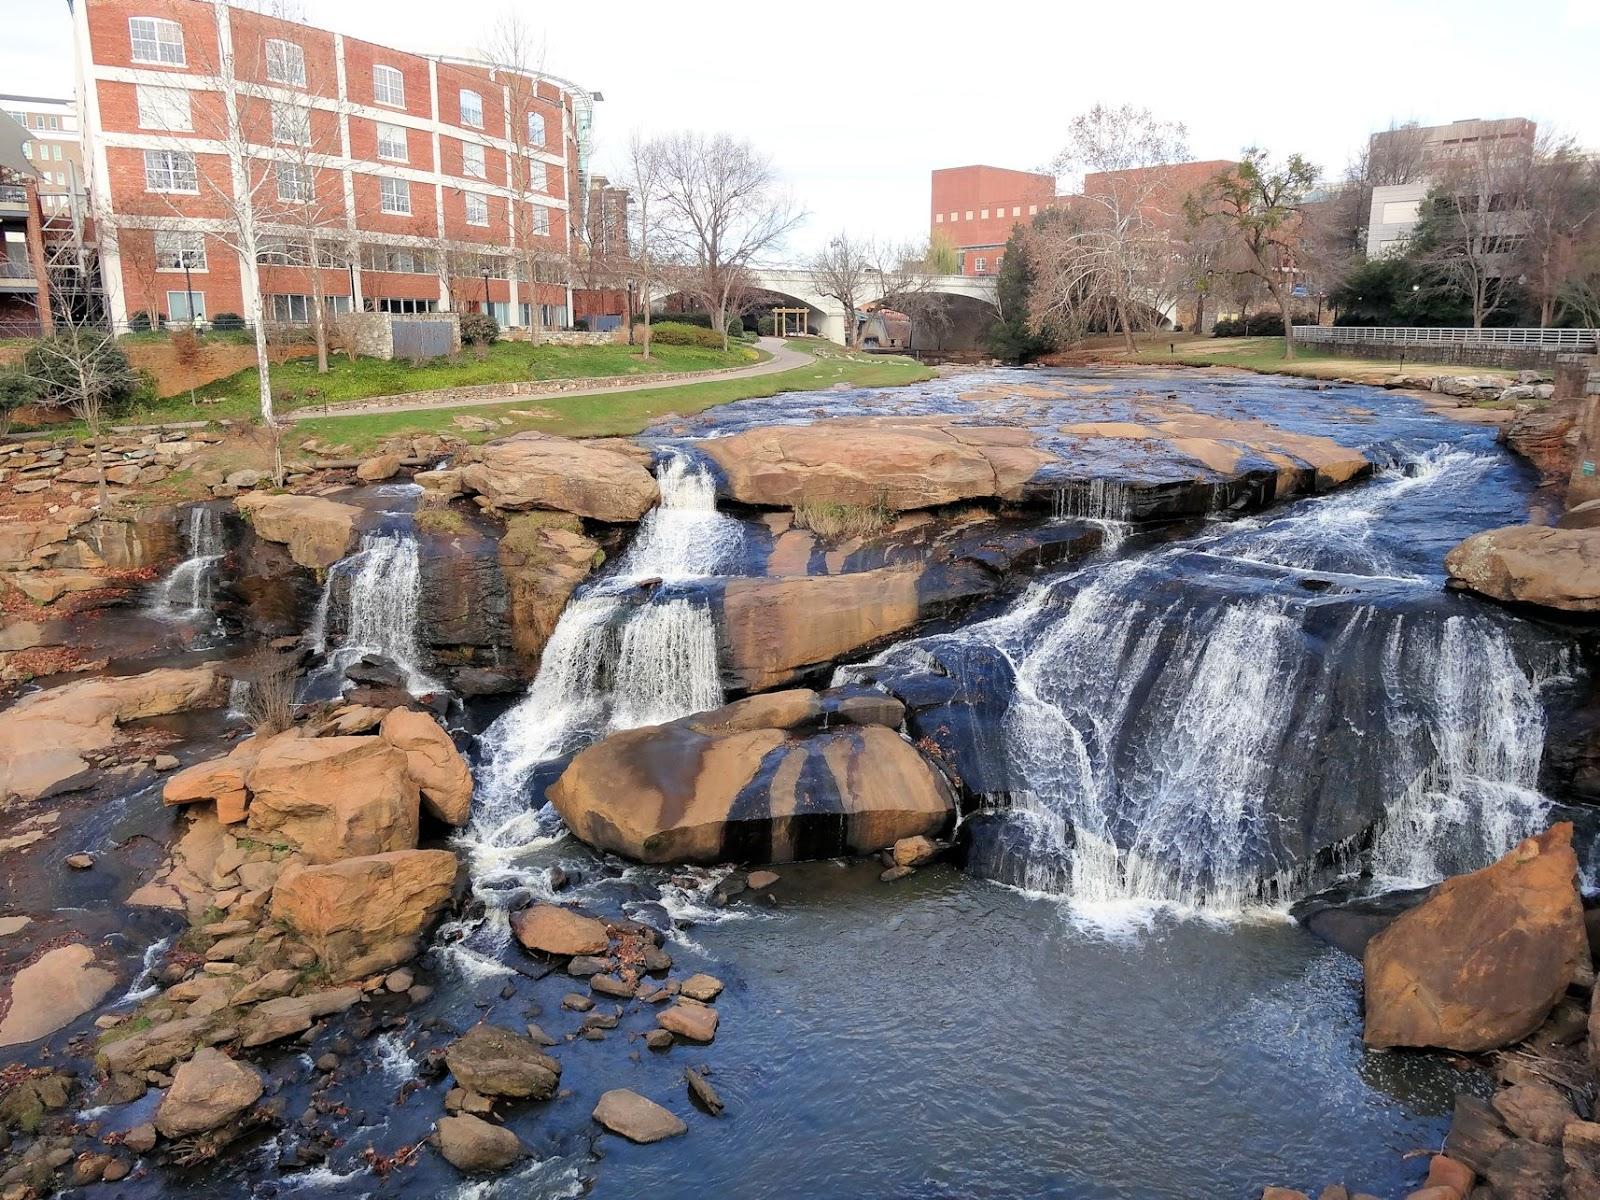 Places To Explore In Greenville, South Carolina